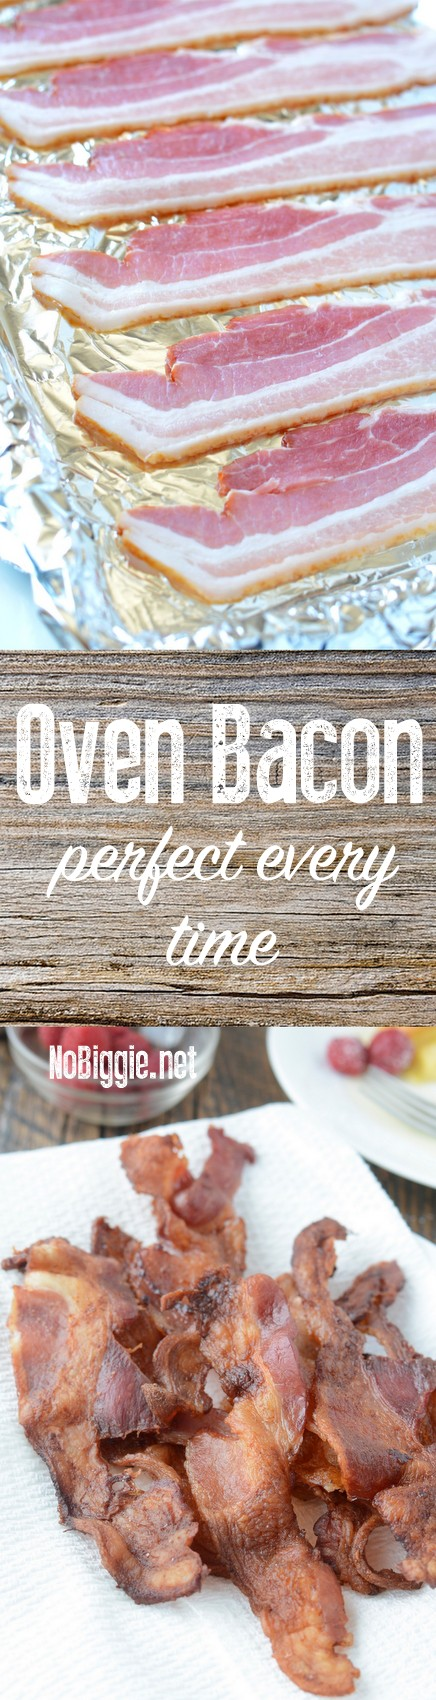 Oven Bacon | NoBiggie.net